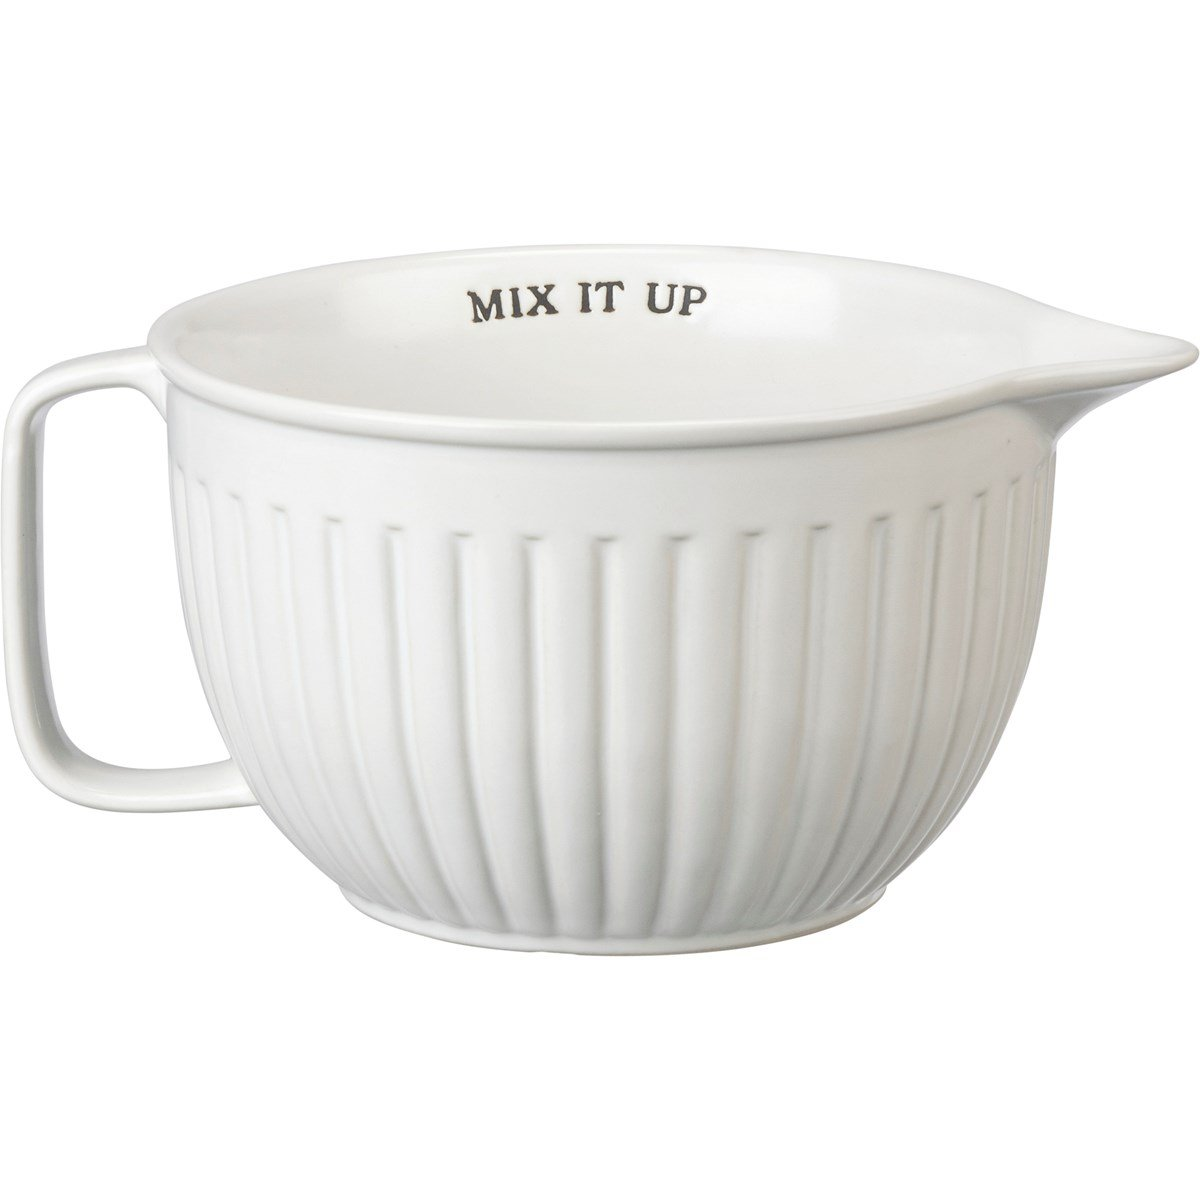 Mix It Up Mixing Bowl